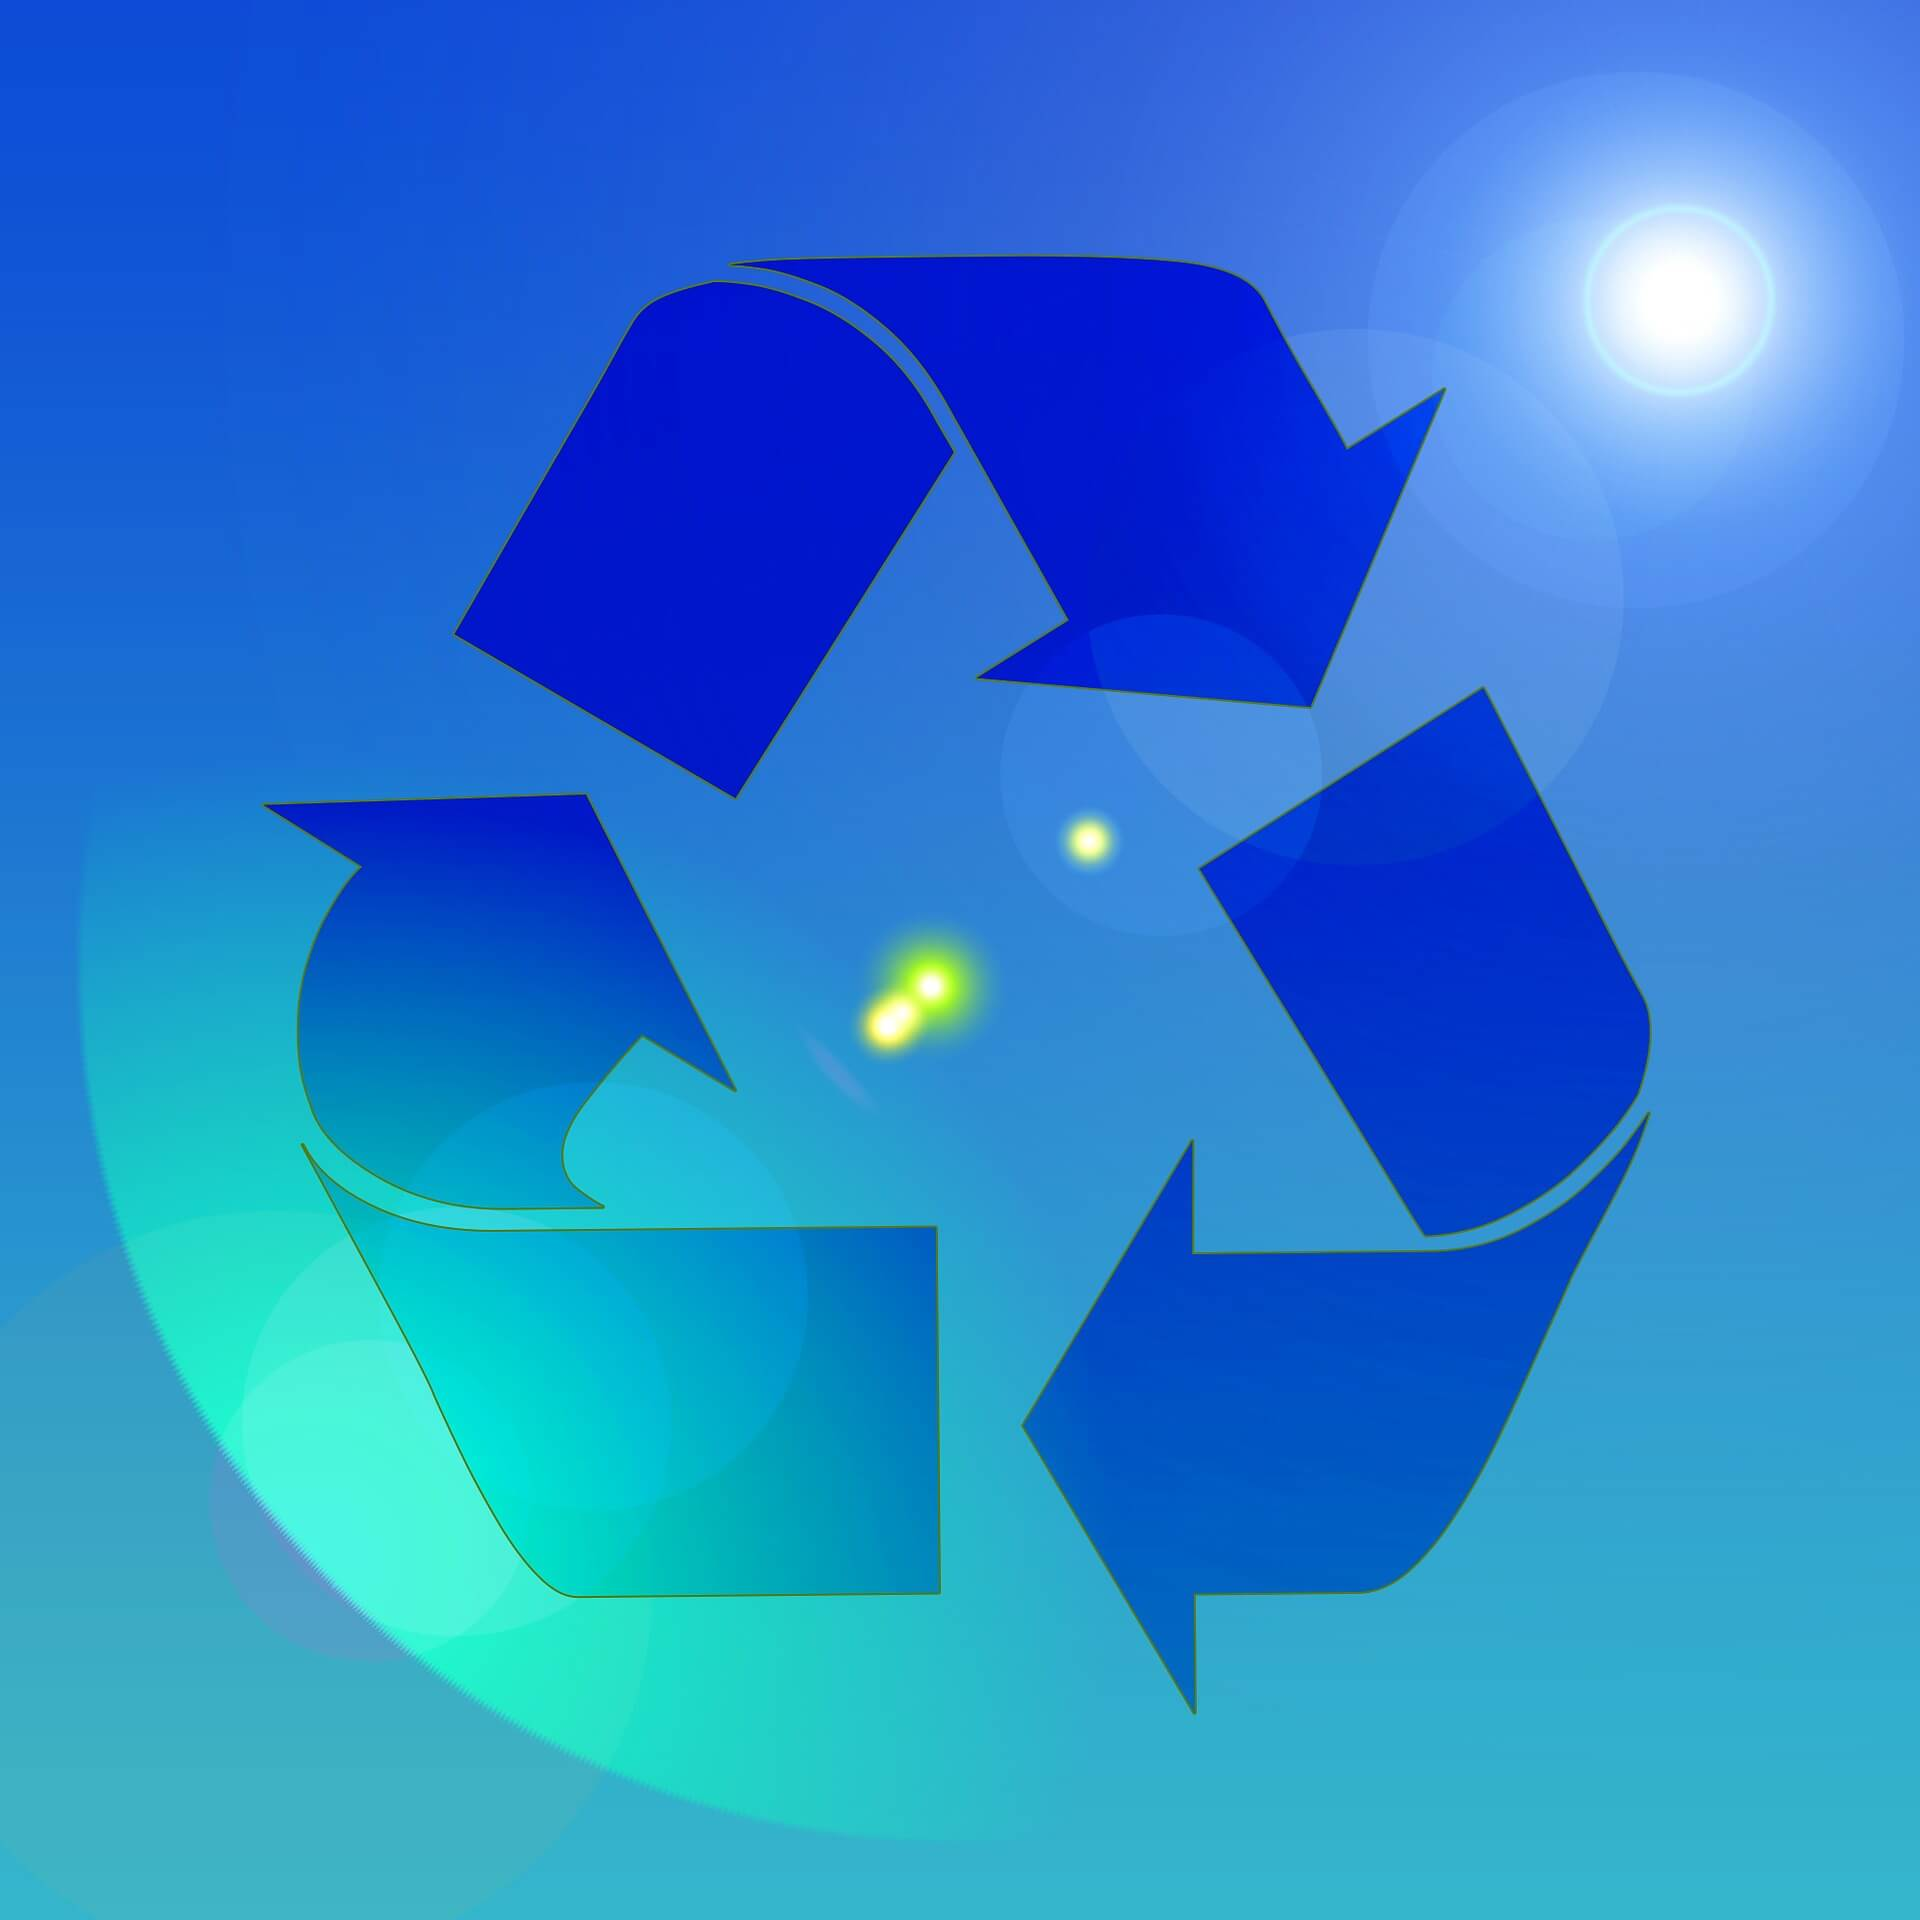 recycling-90481_1920